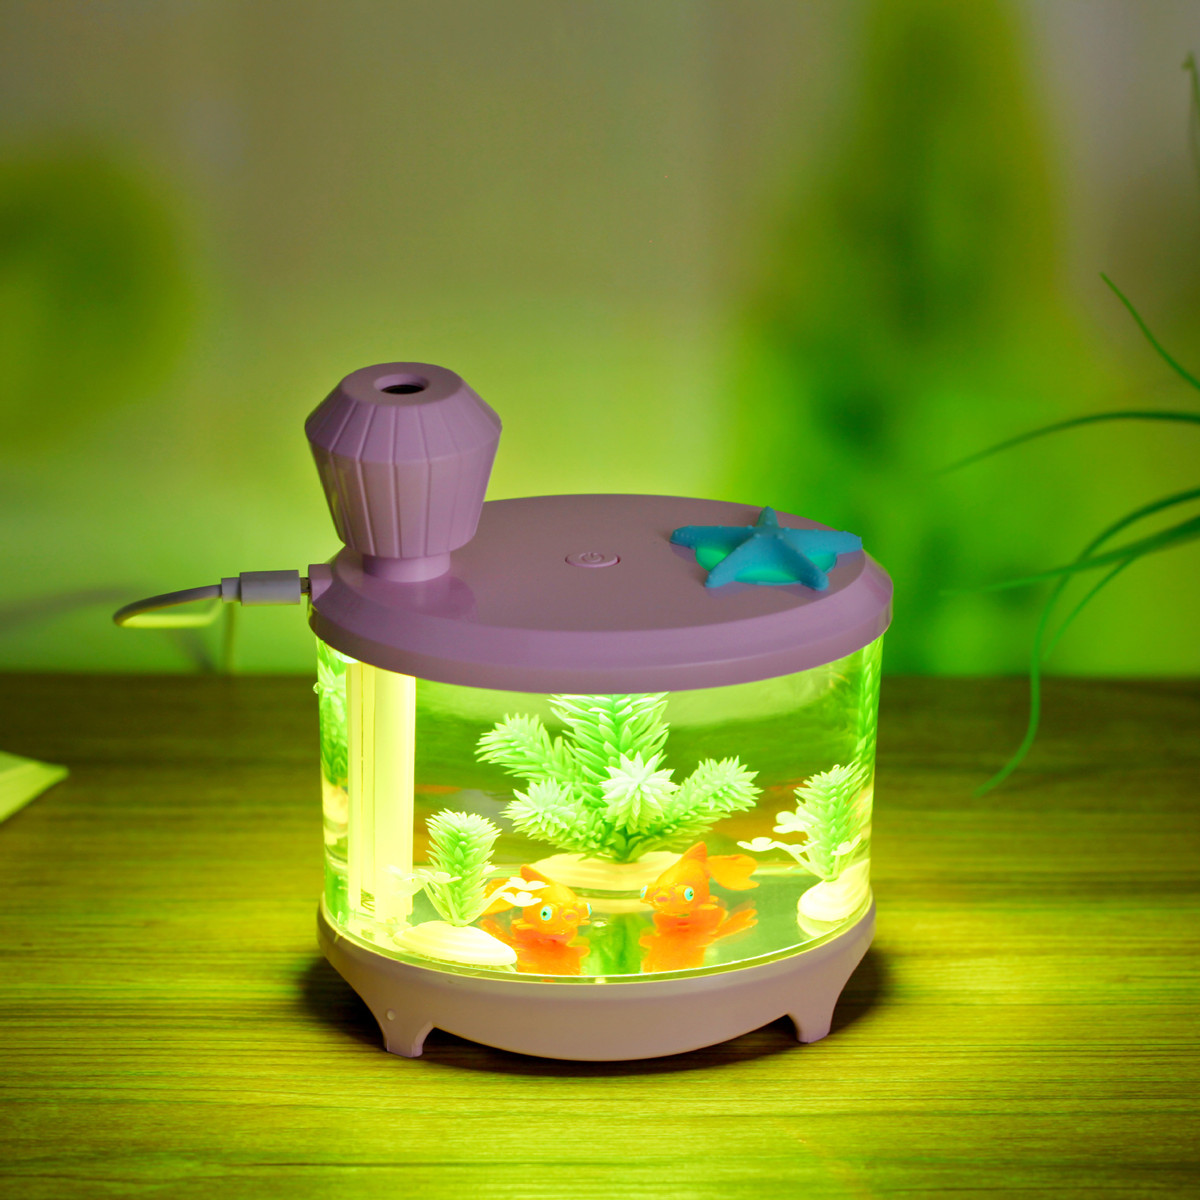 LED Light 5V USB Fish Tank Shaped Humidifier Air Diffuser Purifier Aroma Mist Maker for Bedroom Study Office Living Room Colors usb led light humidifier fish tank aquarium shaped air diffuser purifier atomizer ultrasonic mist maker office home supplies